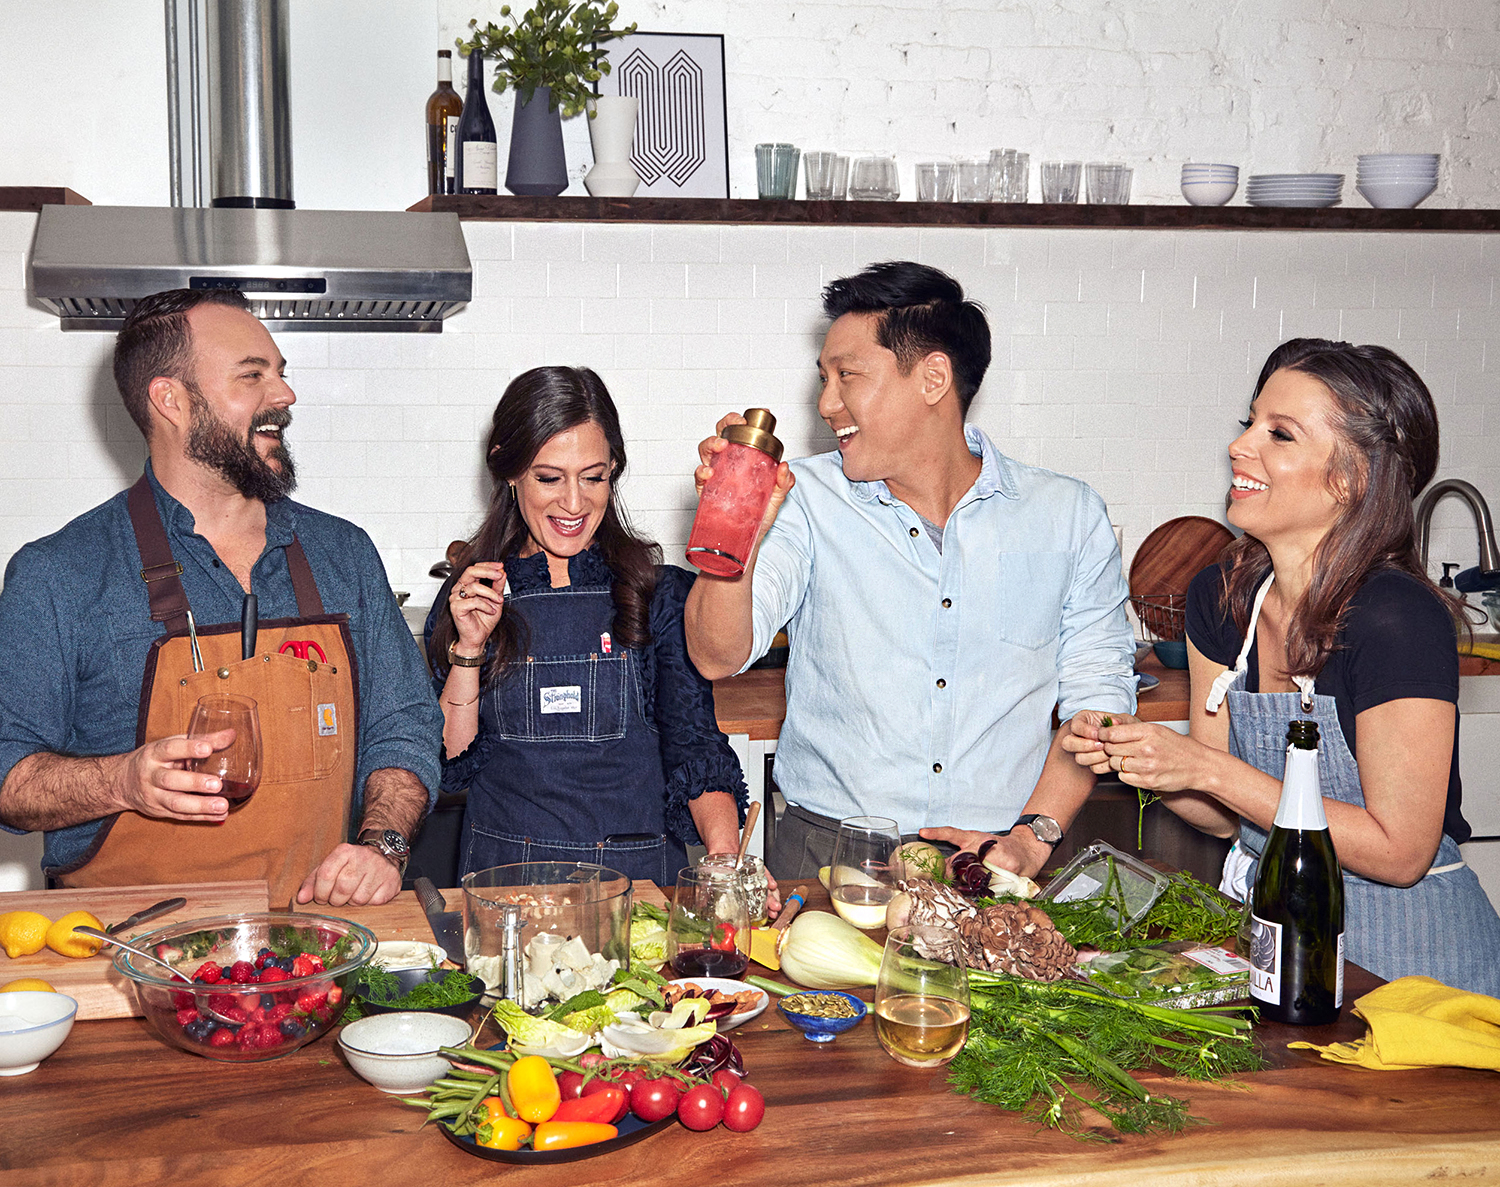 rachael ray food stylists at counter